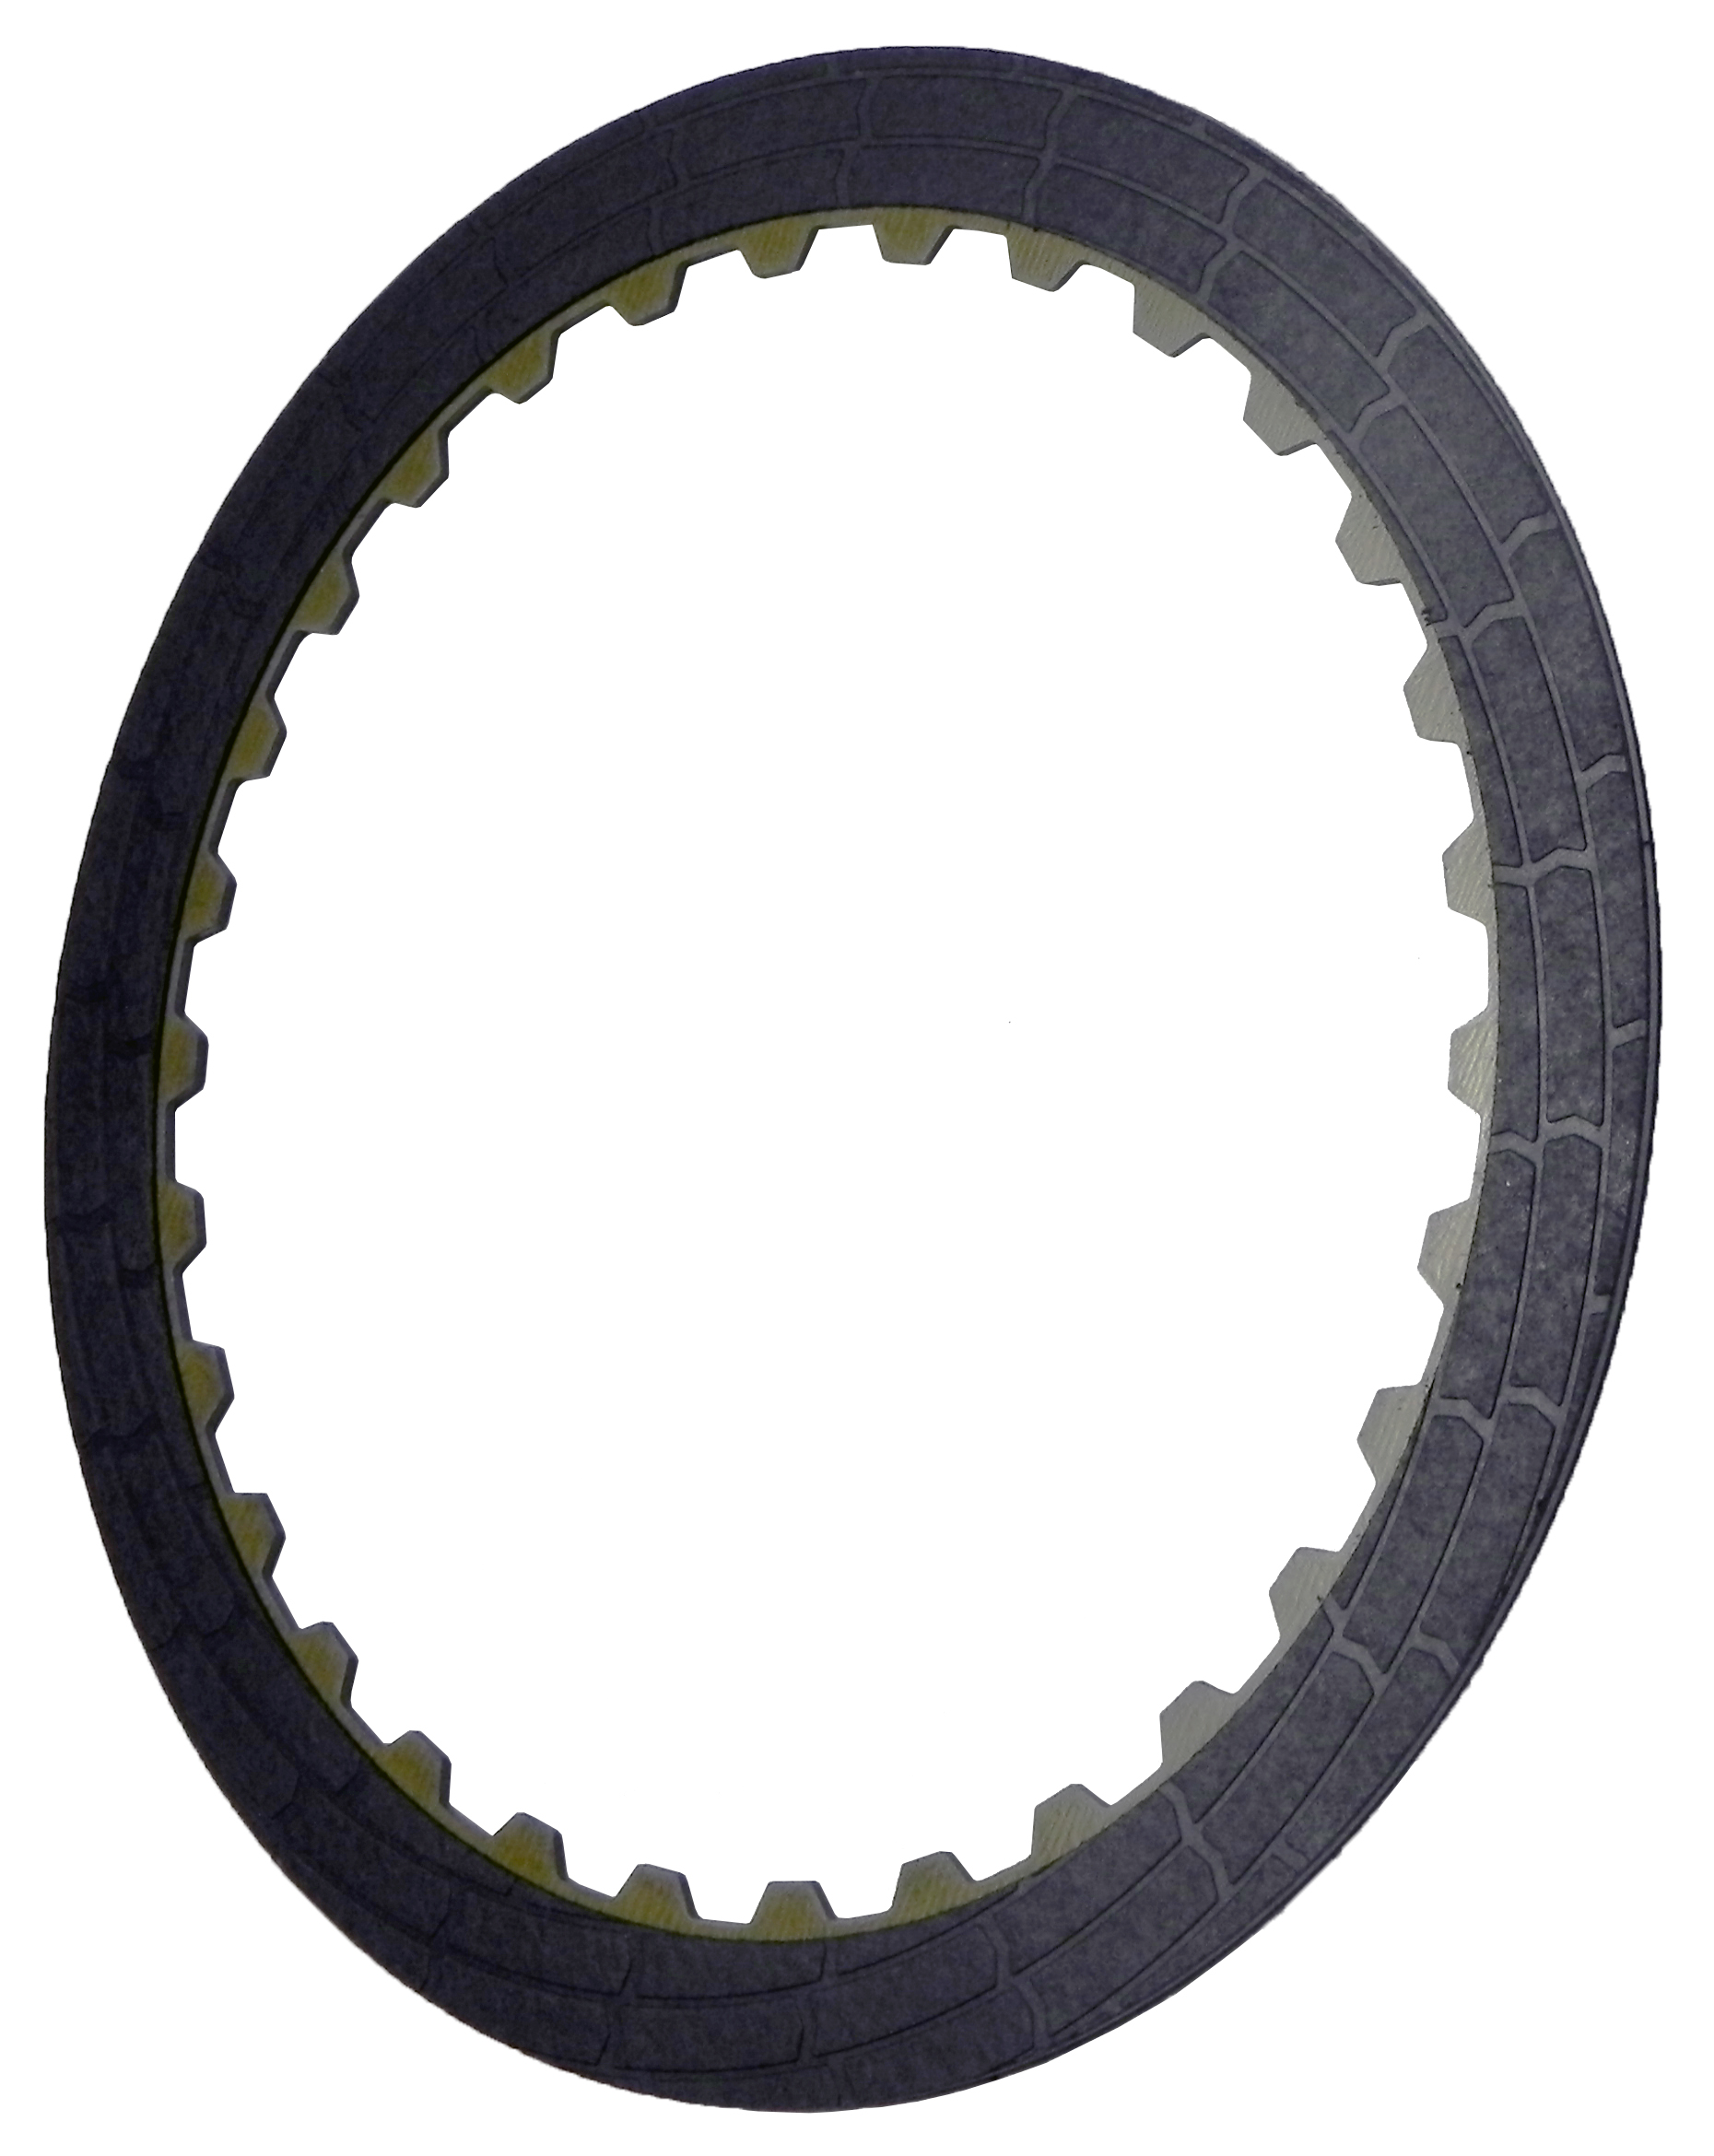 RH565100 | 1997-2008 Friction Clutch Plate (HT) Hybrid Technology Overdrive, Underdrive Proprietary High Energy (HT)